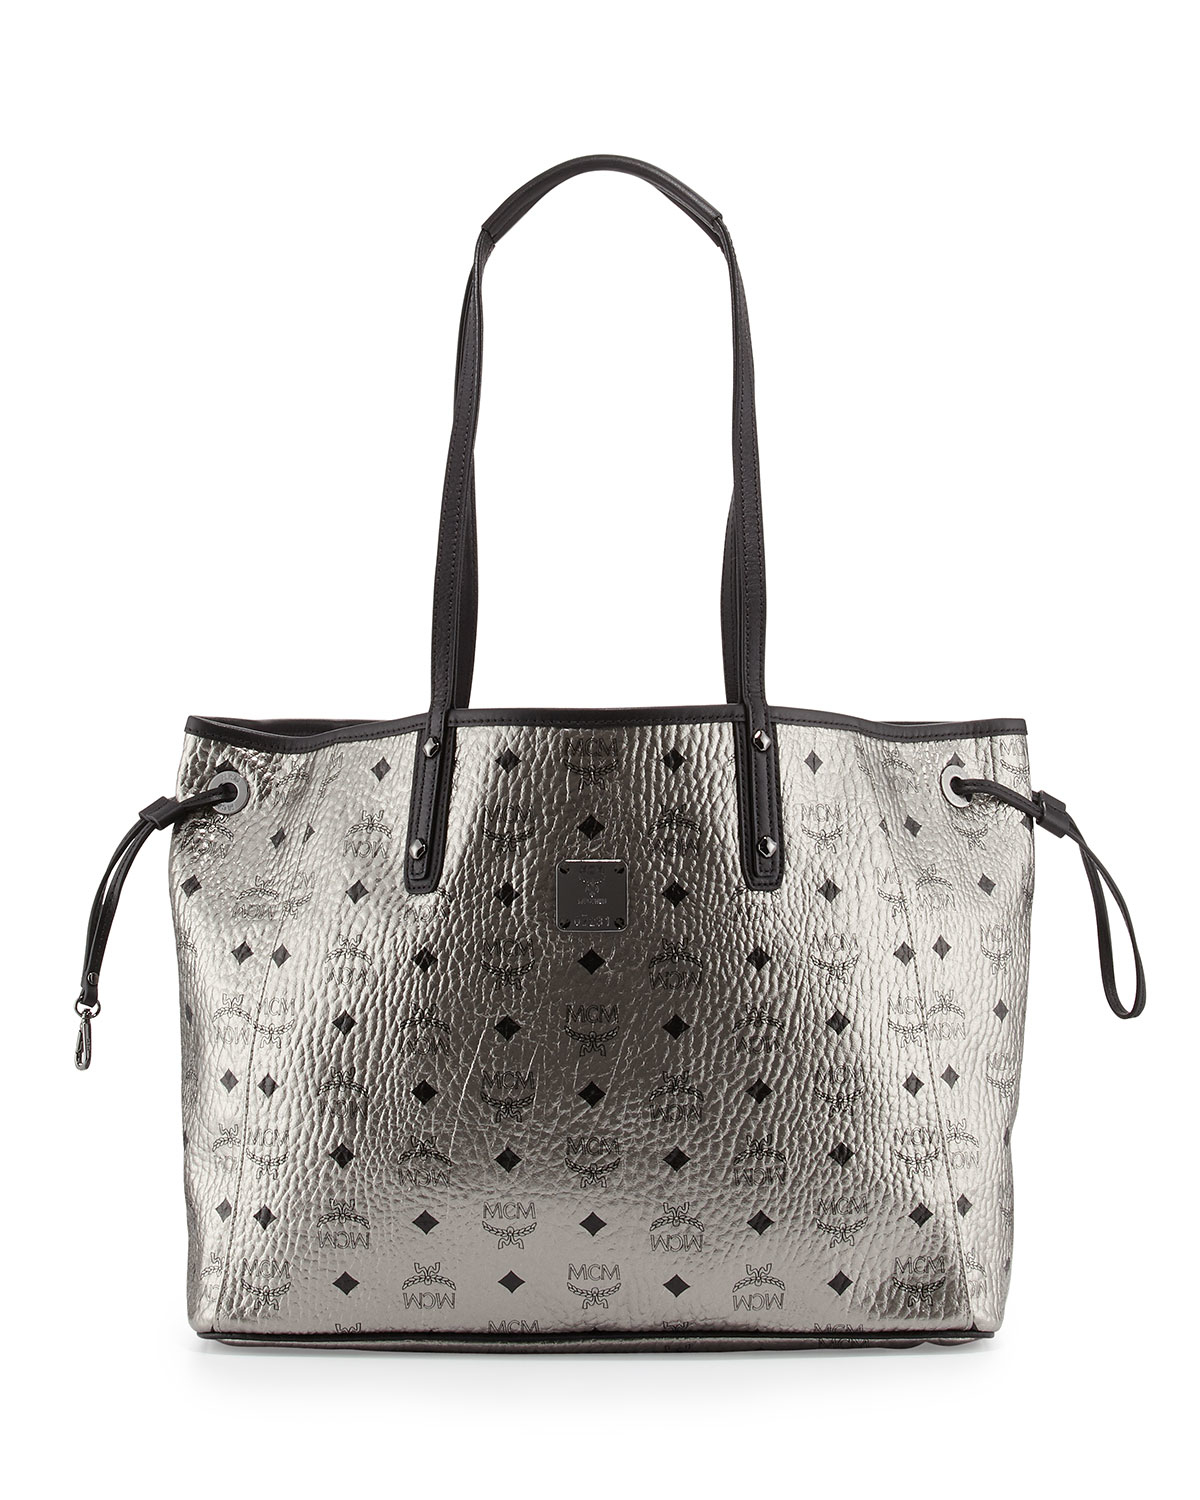 mcm shopper project visetos reversible tote bag in silver lyst. Black Bedroom Furniture Sets. Home Design Ideas